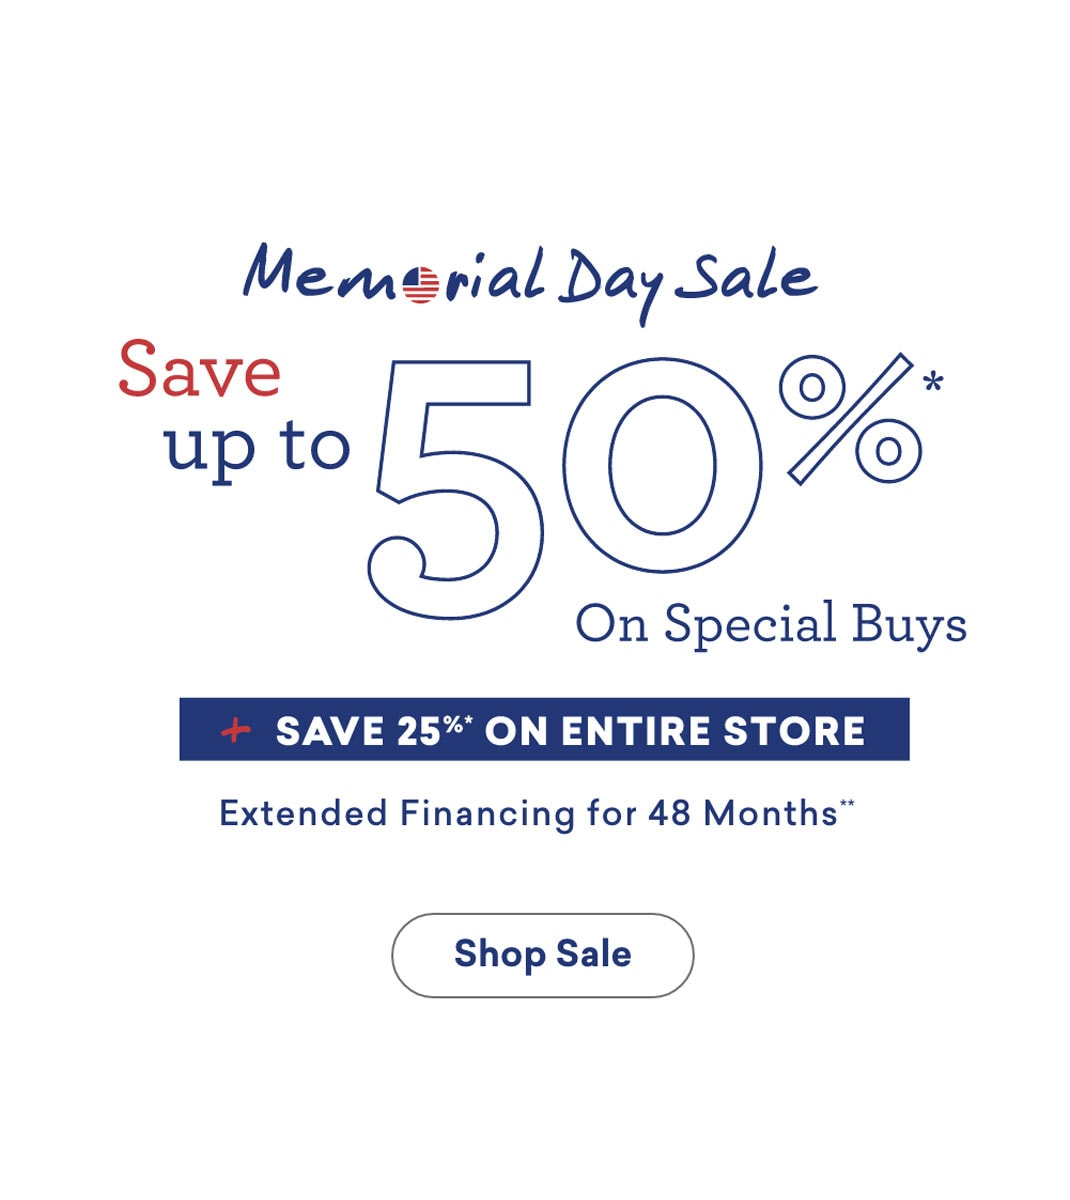 memorial day sale save up to 50% off on special buys plus save 25% on other furniture extended financing 48 months Desktop